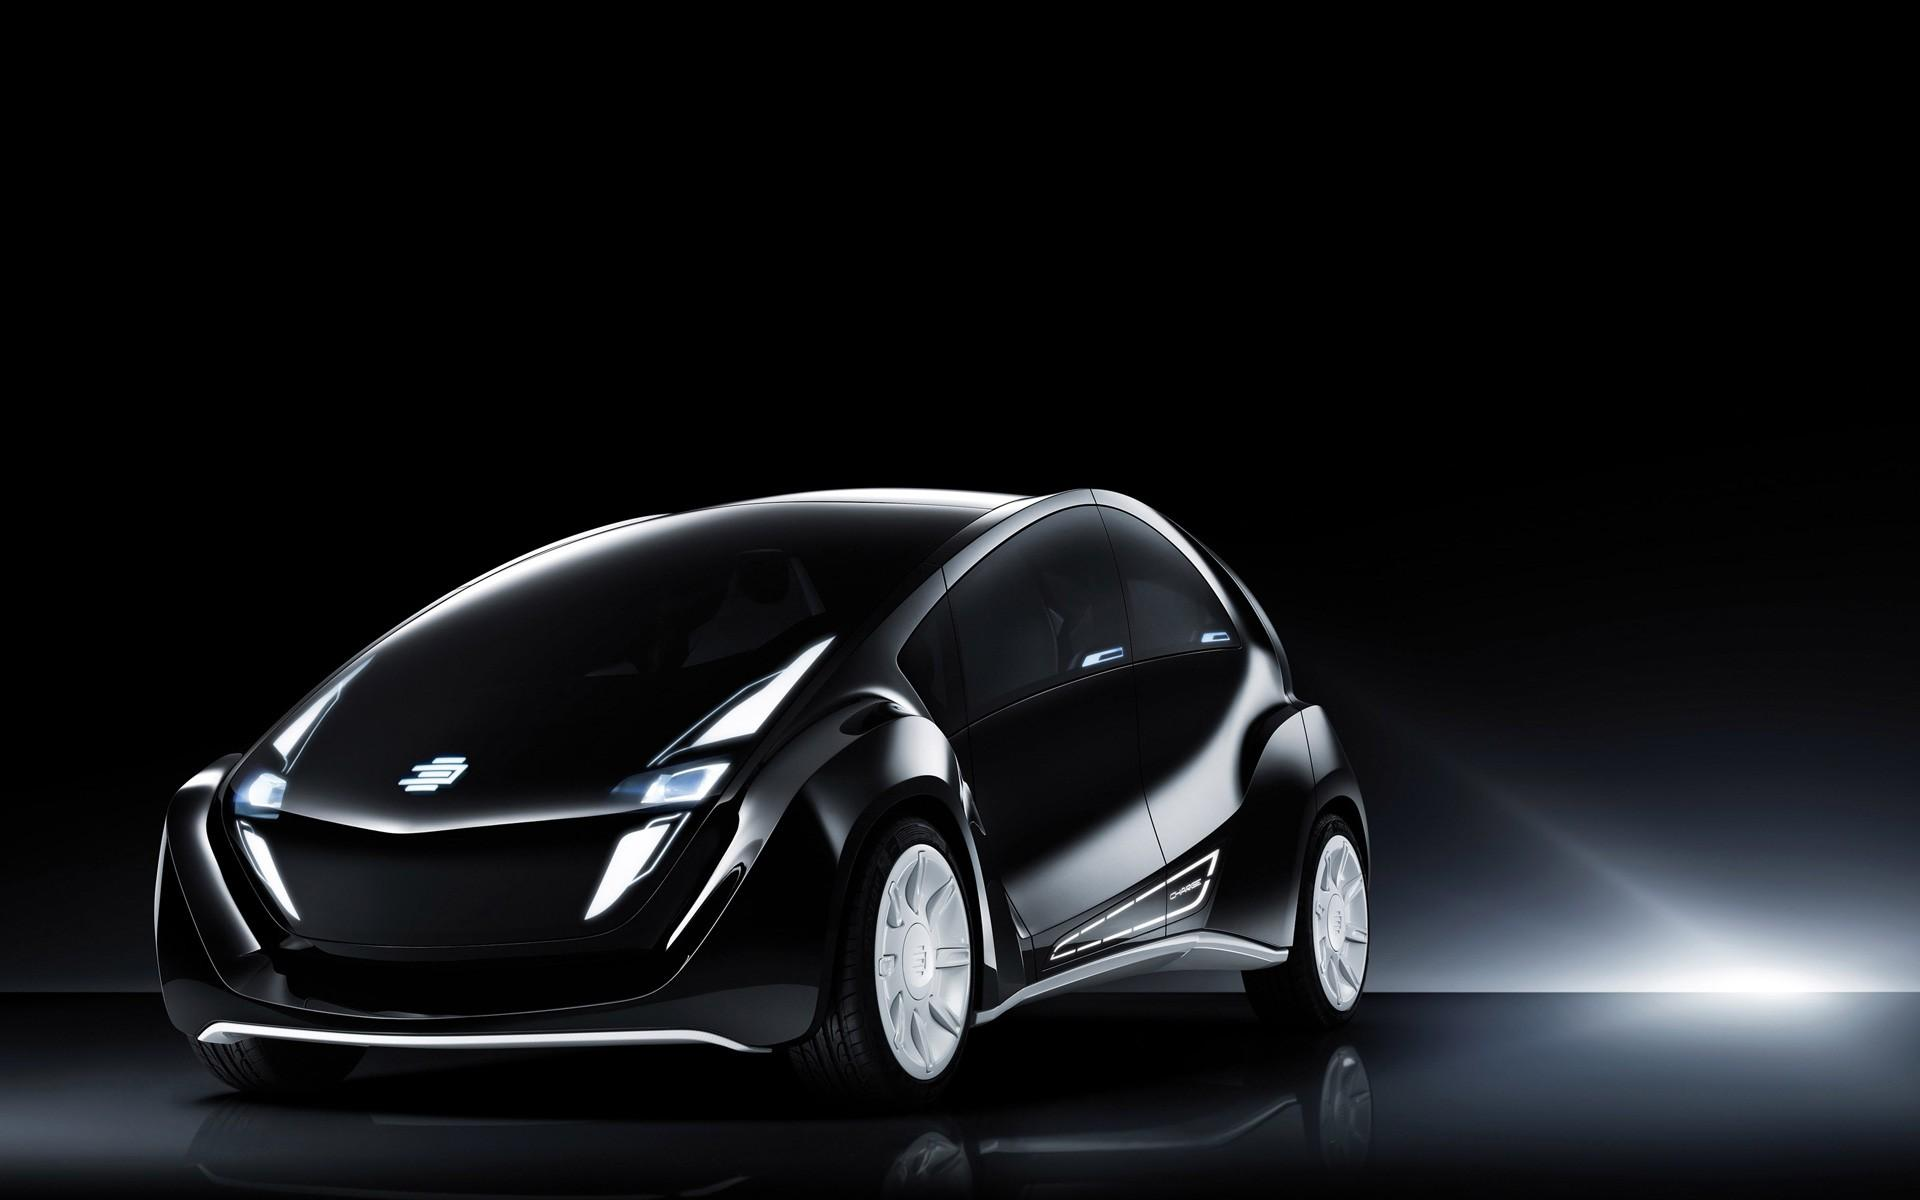 Обои 2009 EDAG Light Car Open Source 1920x1200